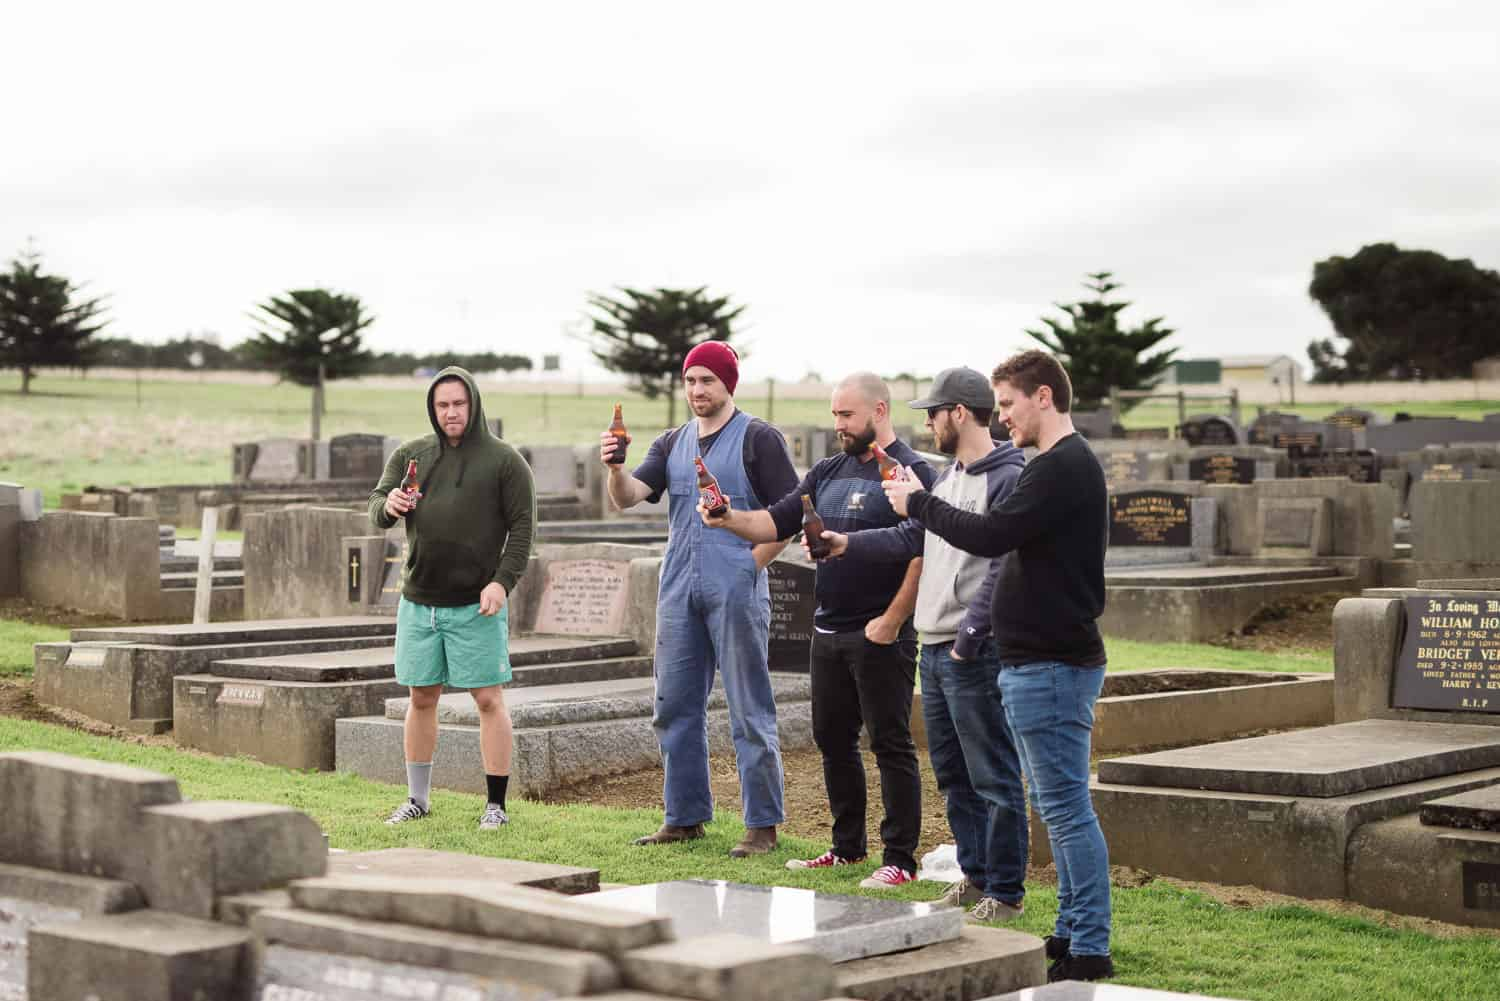 Groomsmen visit a relative's grave